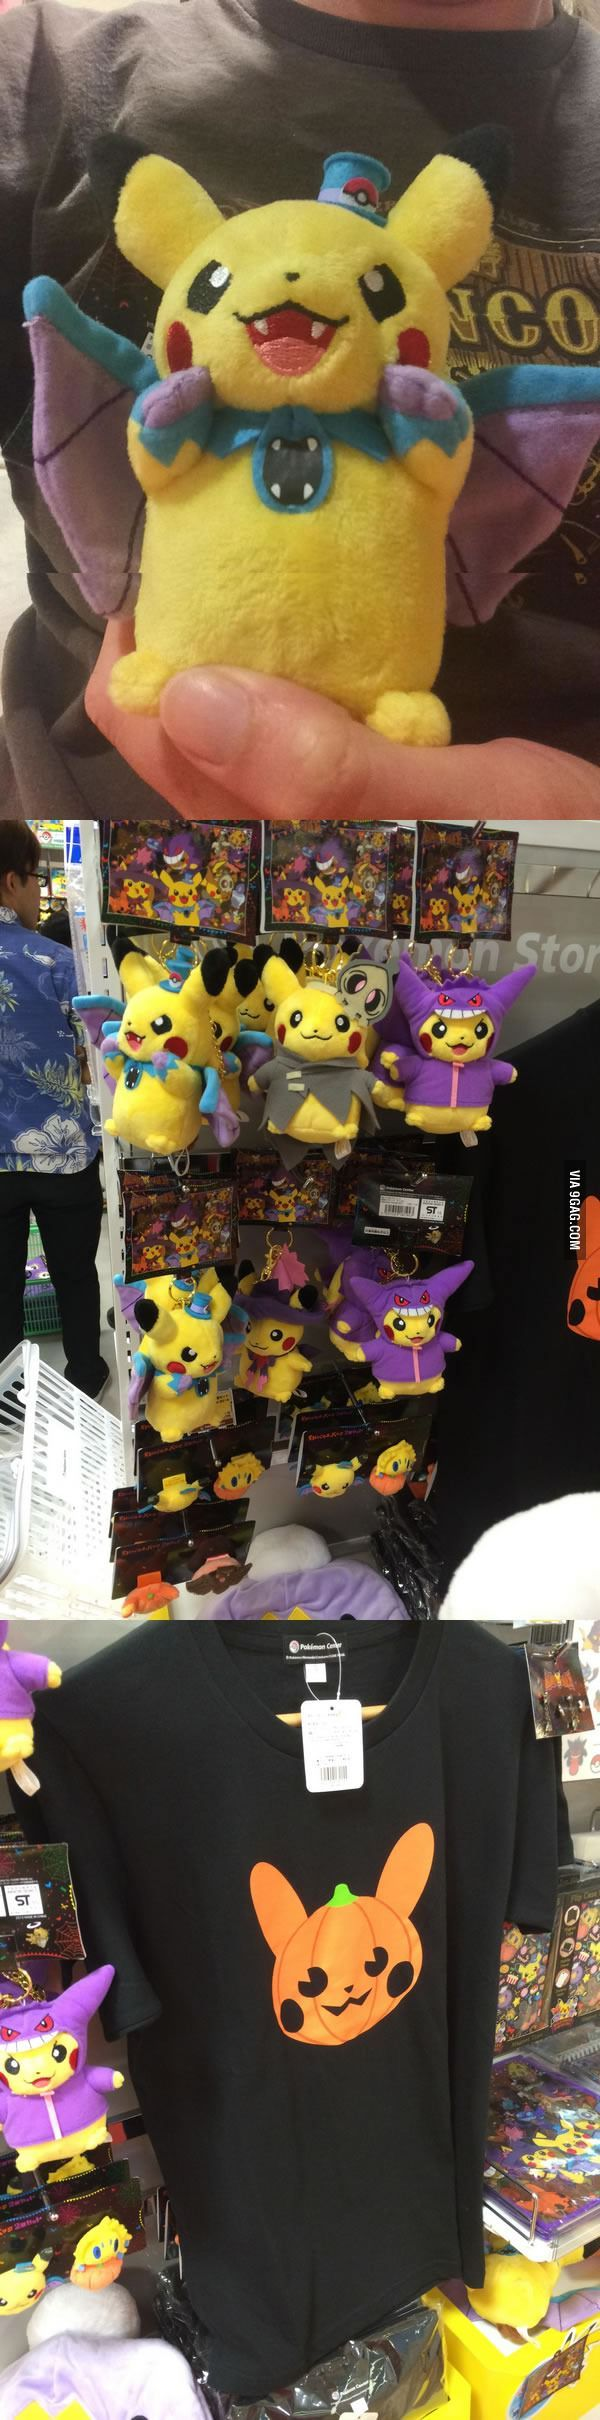 Pokemon stores in Japan had new Halloween items out